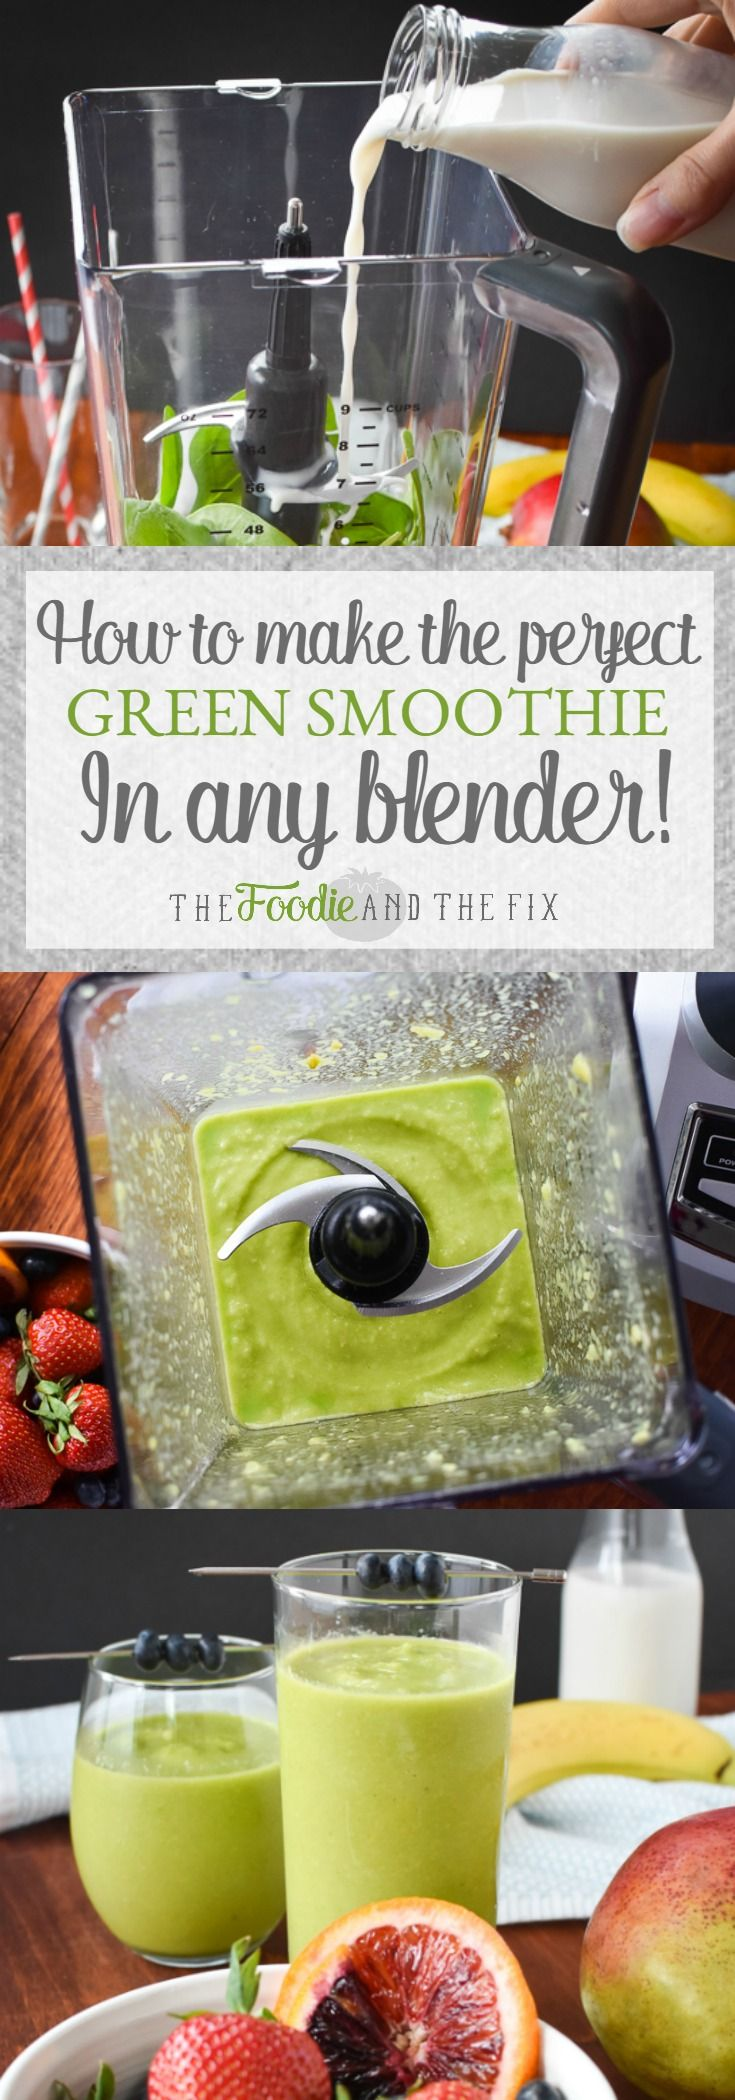 Make a super smooth, healthy and delicious smoothie every single time with this simple trick and the perfect ingredient ratios!